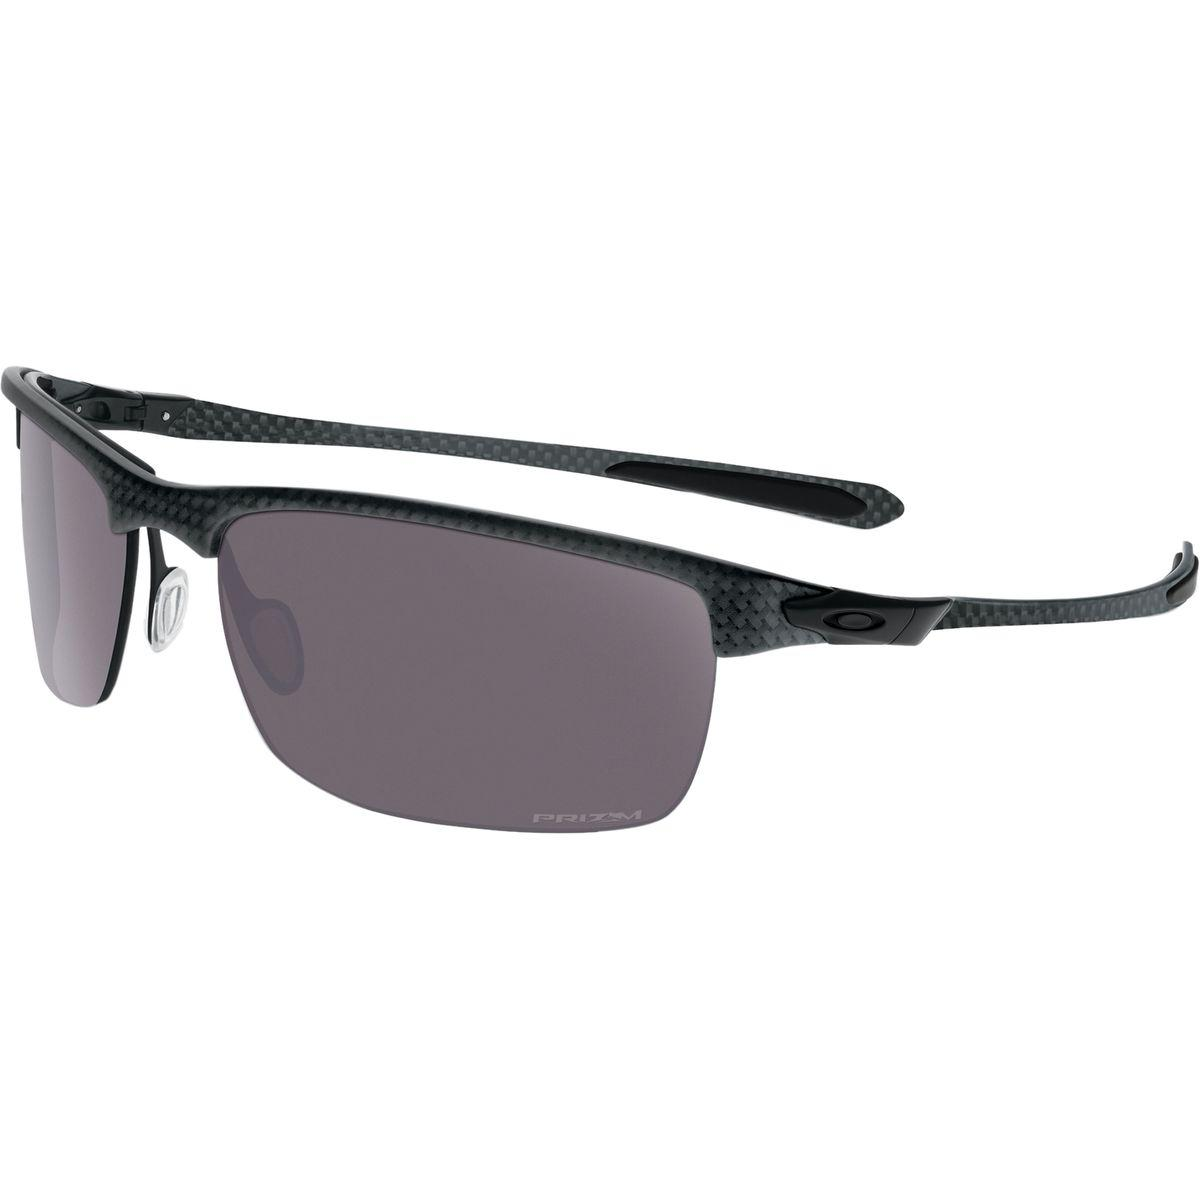 4e4779624d Lyst - Oakley Carbon Blade Prizm Polarized Sunglasses in Black for Men